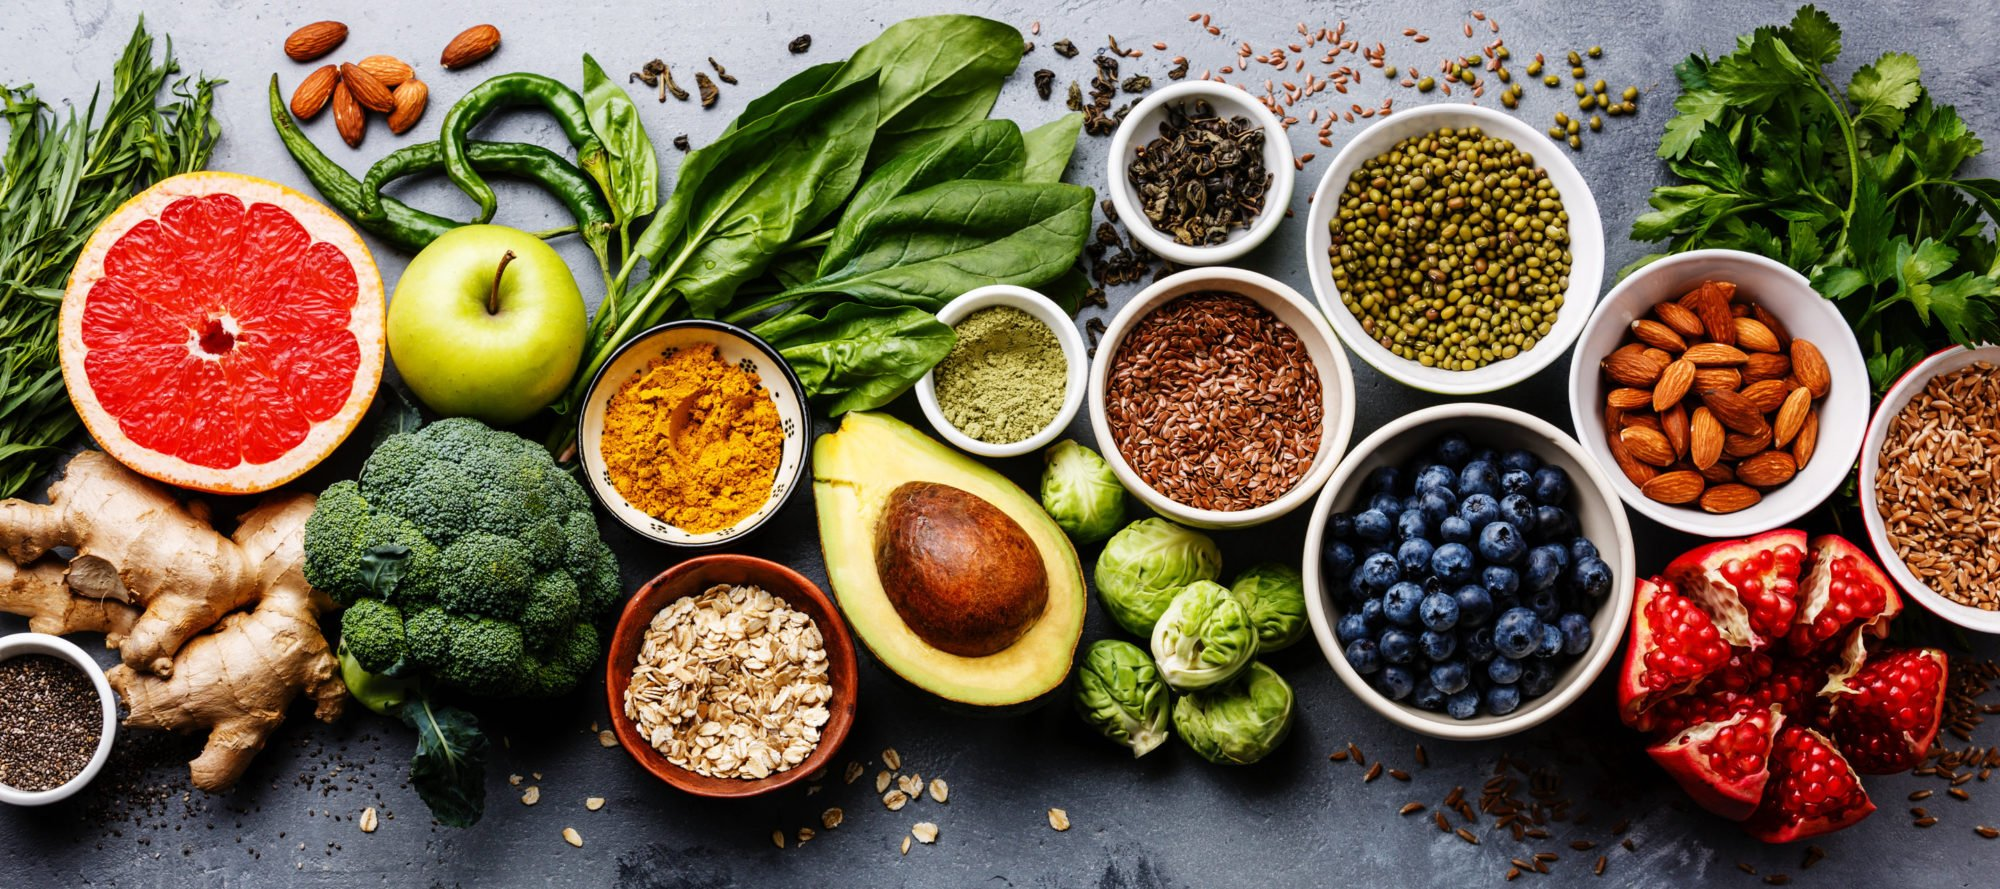 Superfoods: What are They and Could They Aid in Longevity